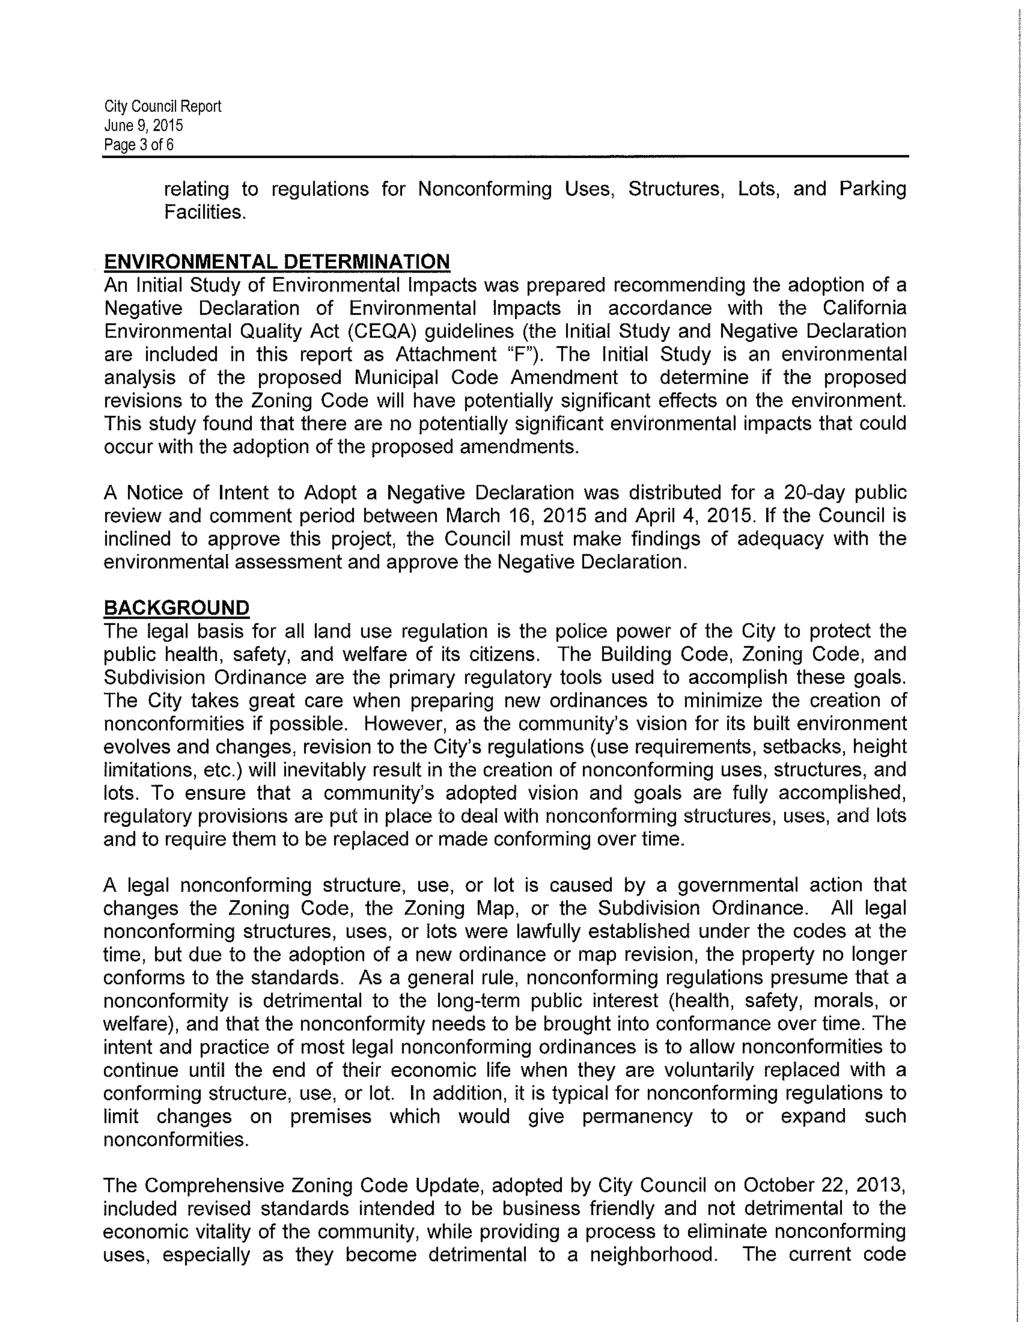 City Council Report June 9 2015 Page 3 of 6 relating to regulations for Nonconforming Uses Structures Lots and Parking Facilities ENVIRONMENTAL DETERMINATION An Initial Study of Environmental Impacts